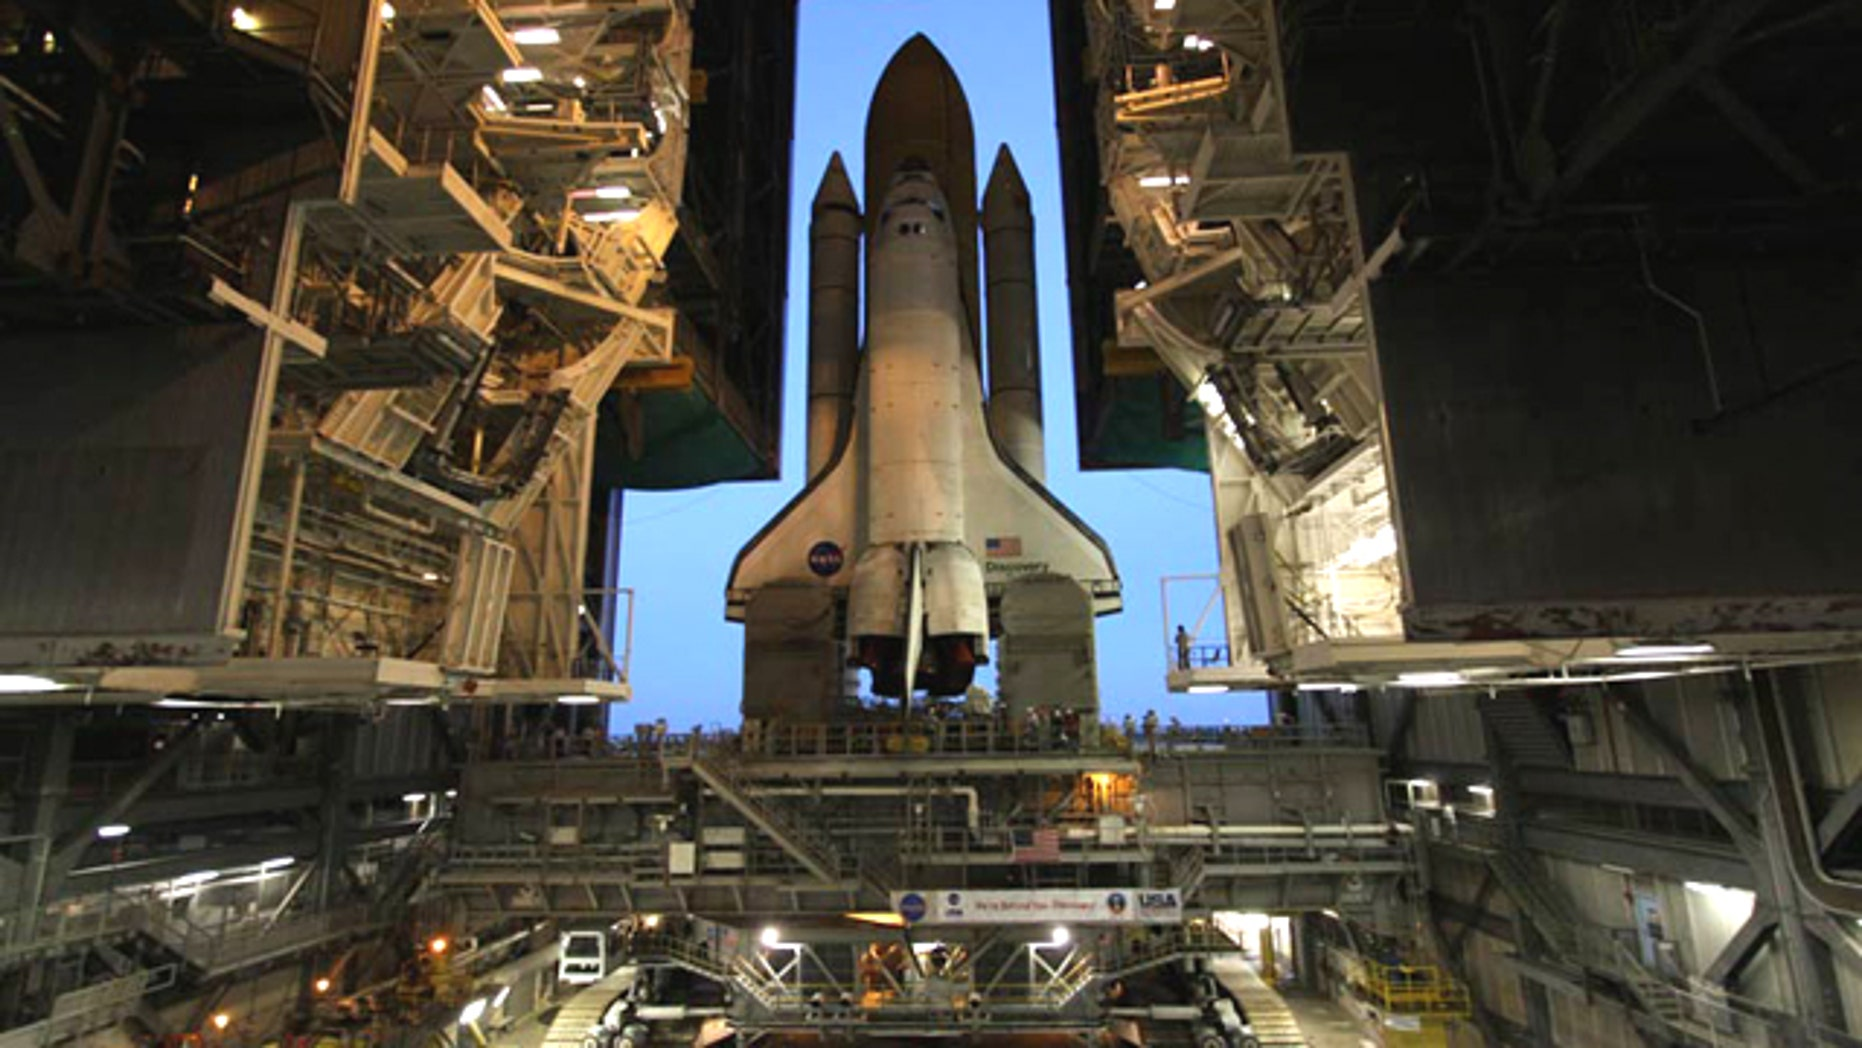 Space shuttle Discovery moves out of the cavernous Vehicle Assembly Building for the last time on Sept. 20, 2010 to prepare for its final mission to the International Space Station.